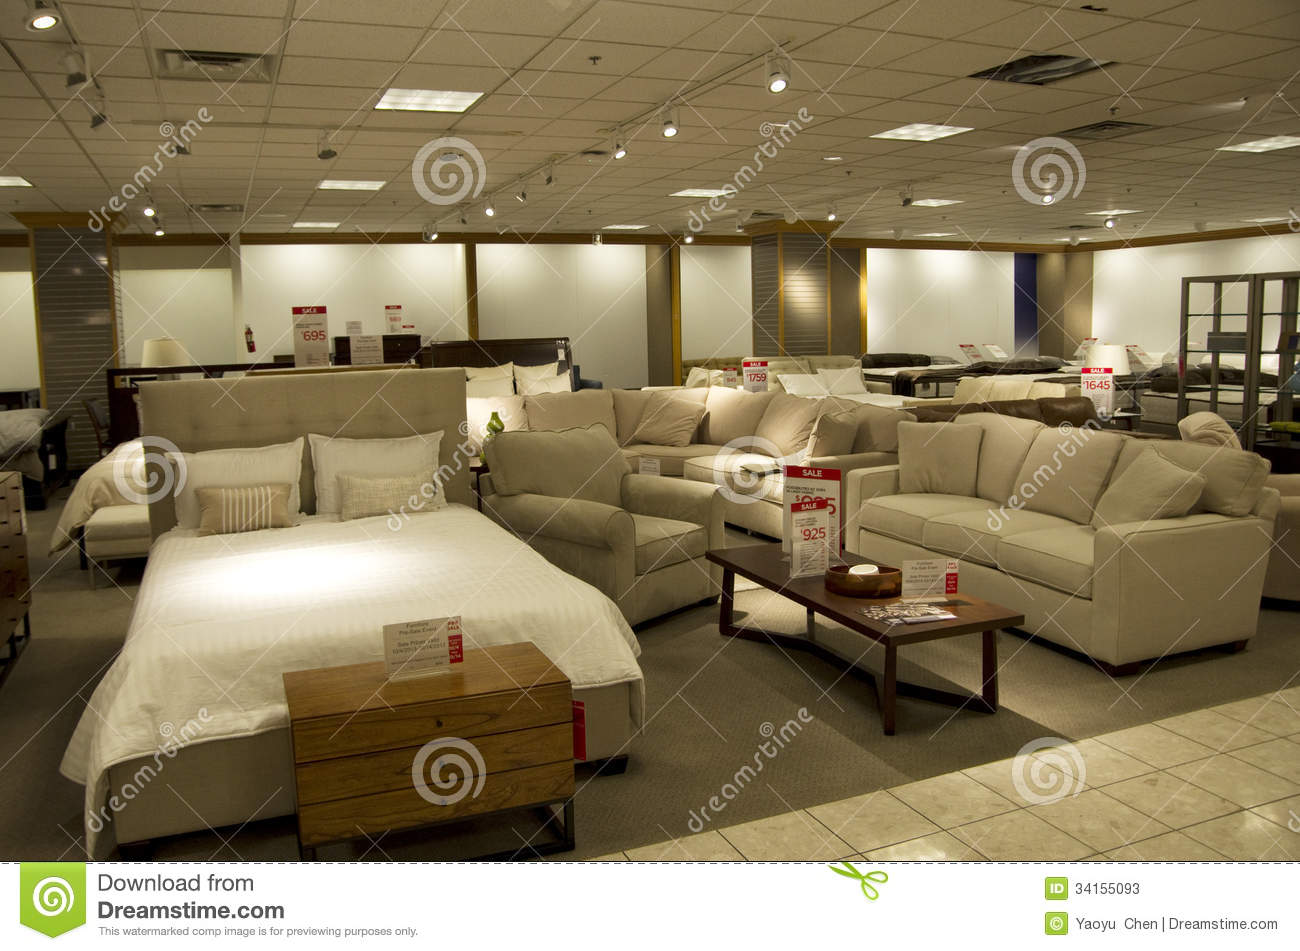 Selling Home Furniture selling home furniture Home Furniture Department Store